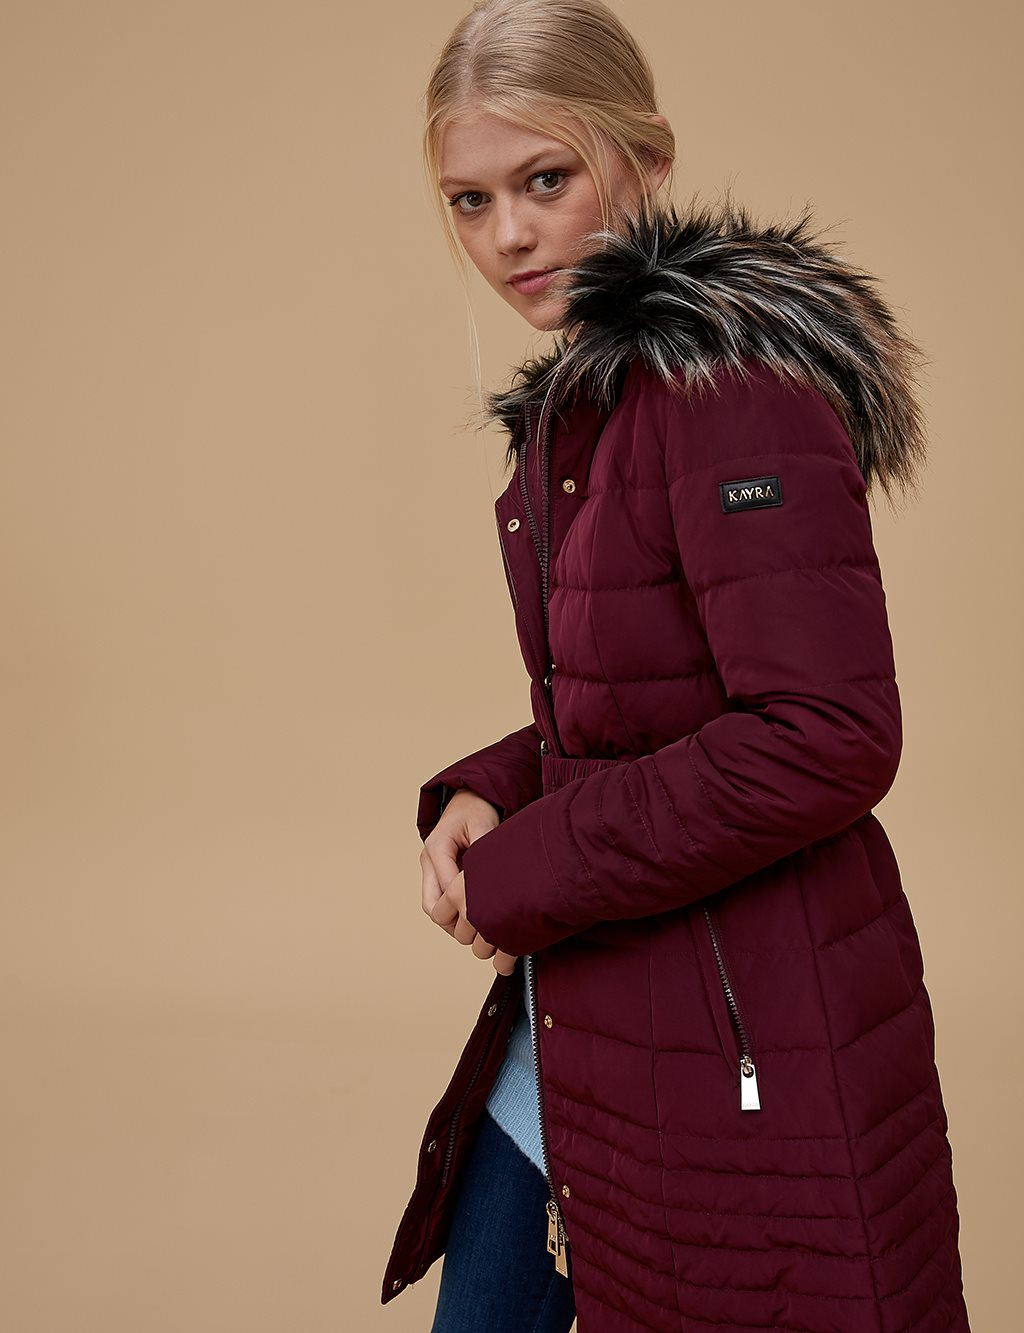 Goose-Quill Coat Burgundy A7 27009